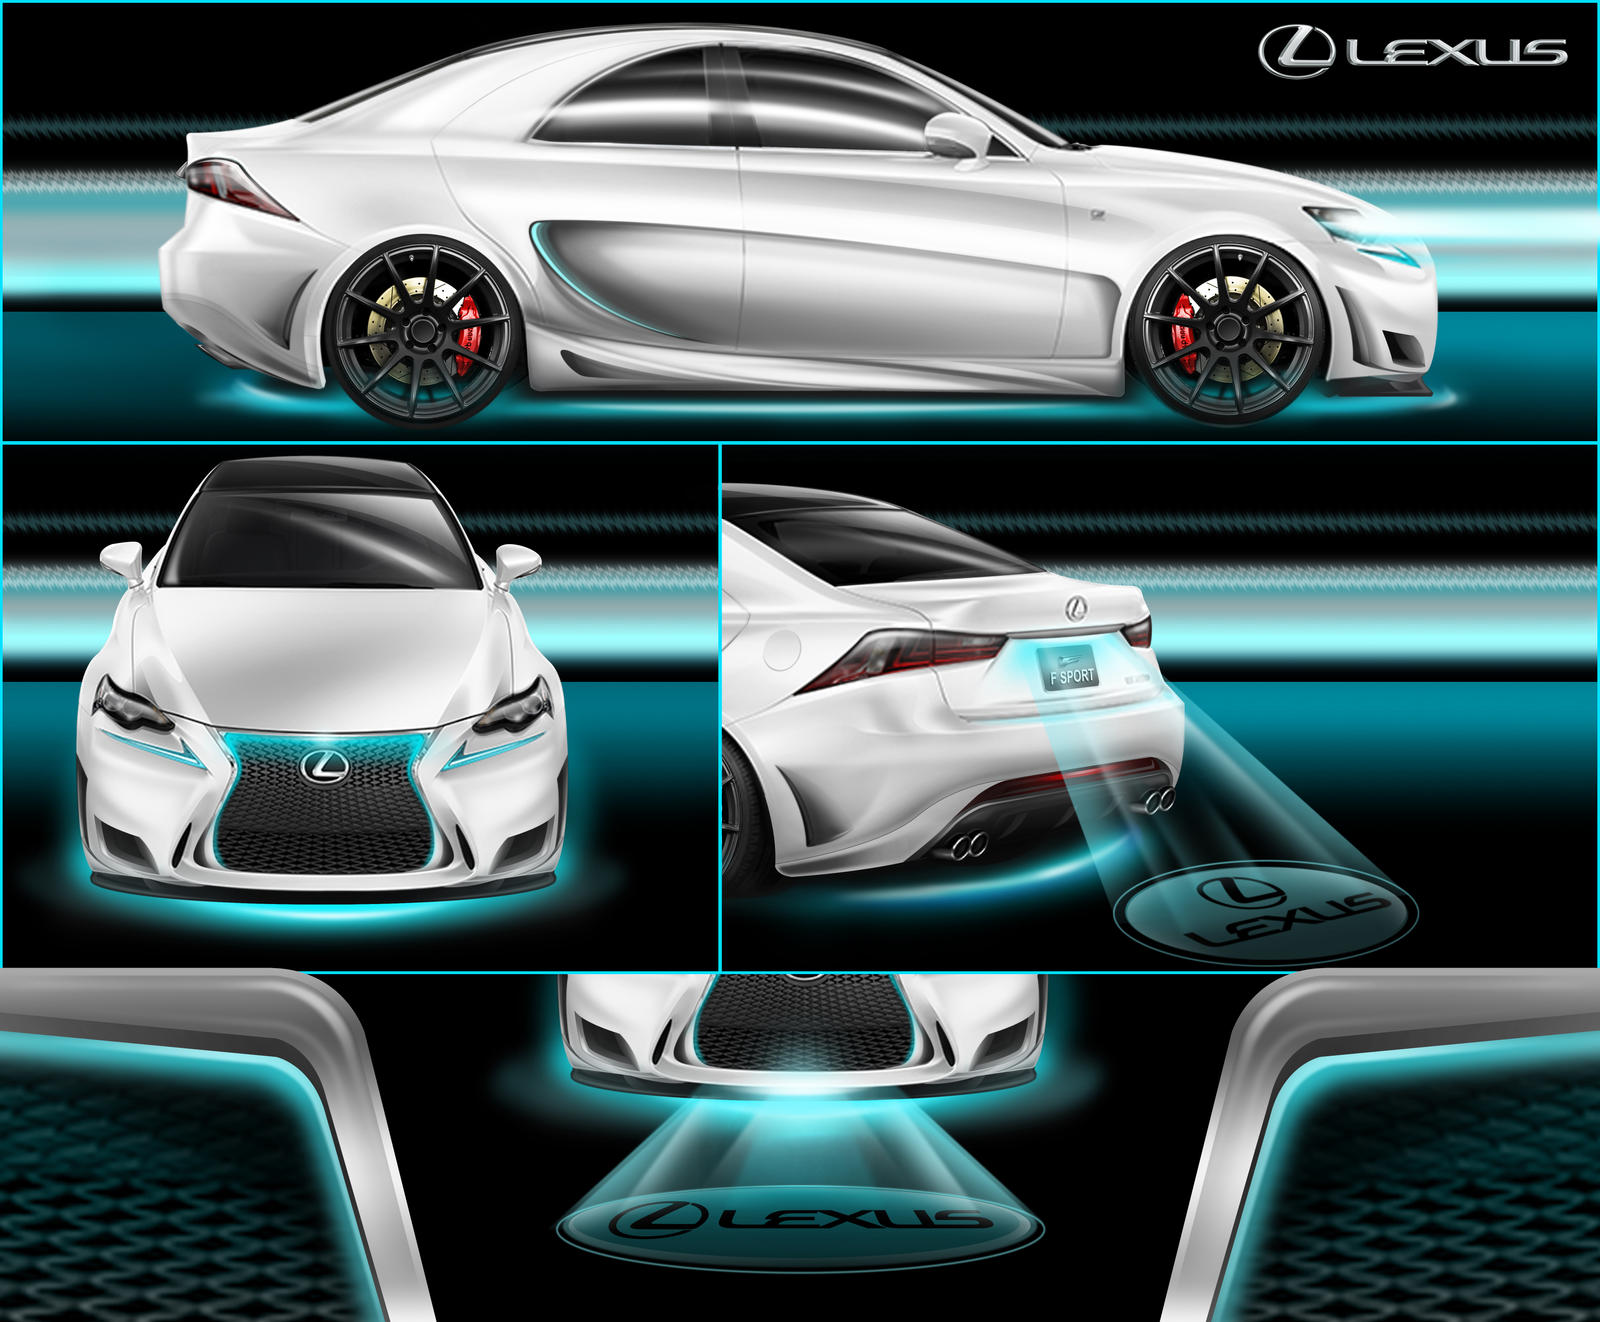 4/2-door Lexus Design Submission reyj by reyjdesigns